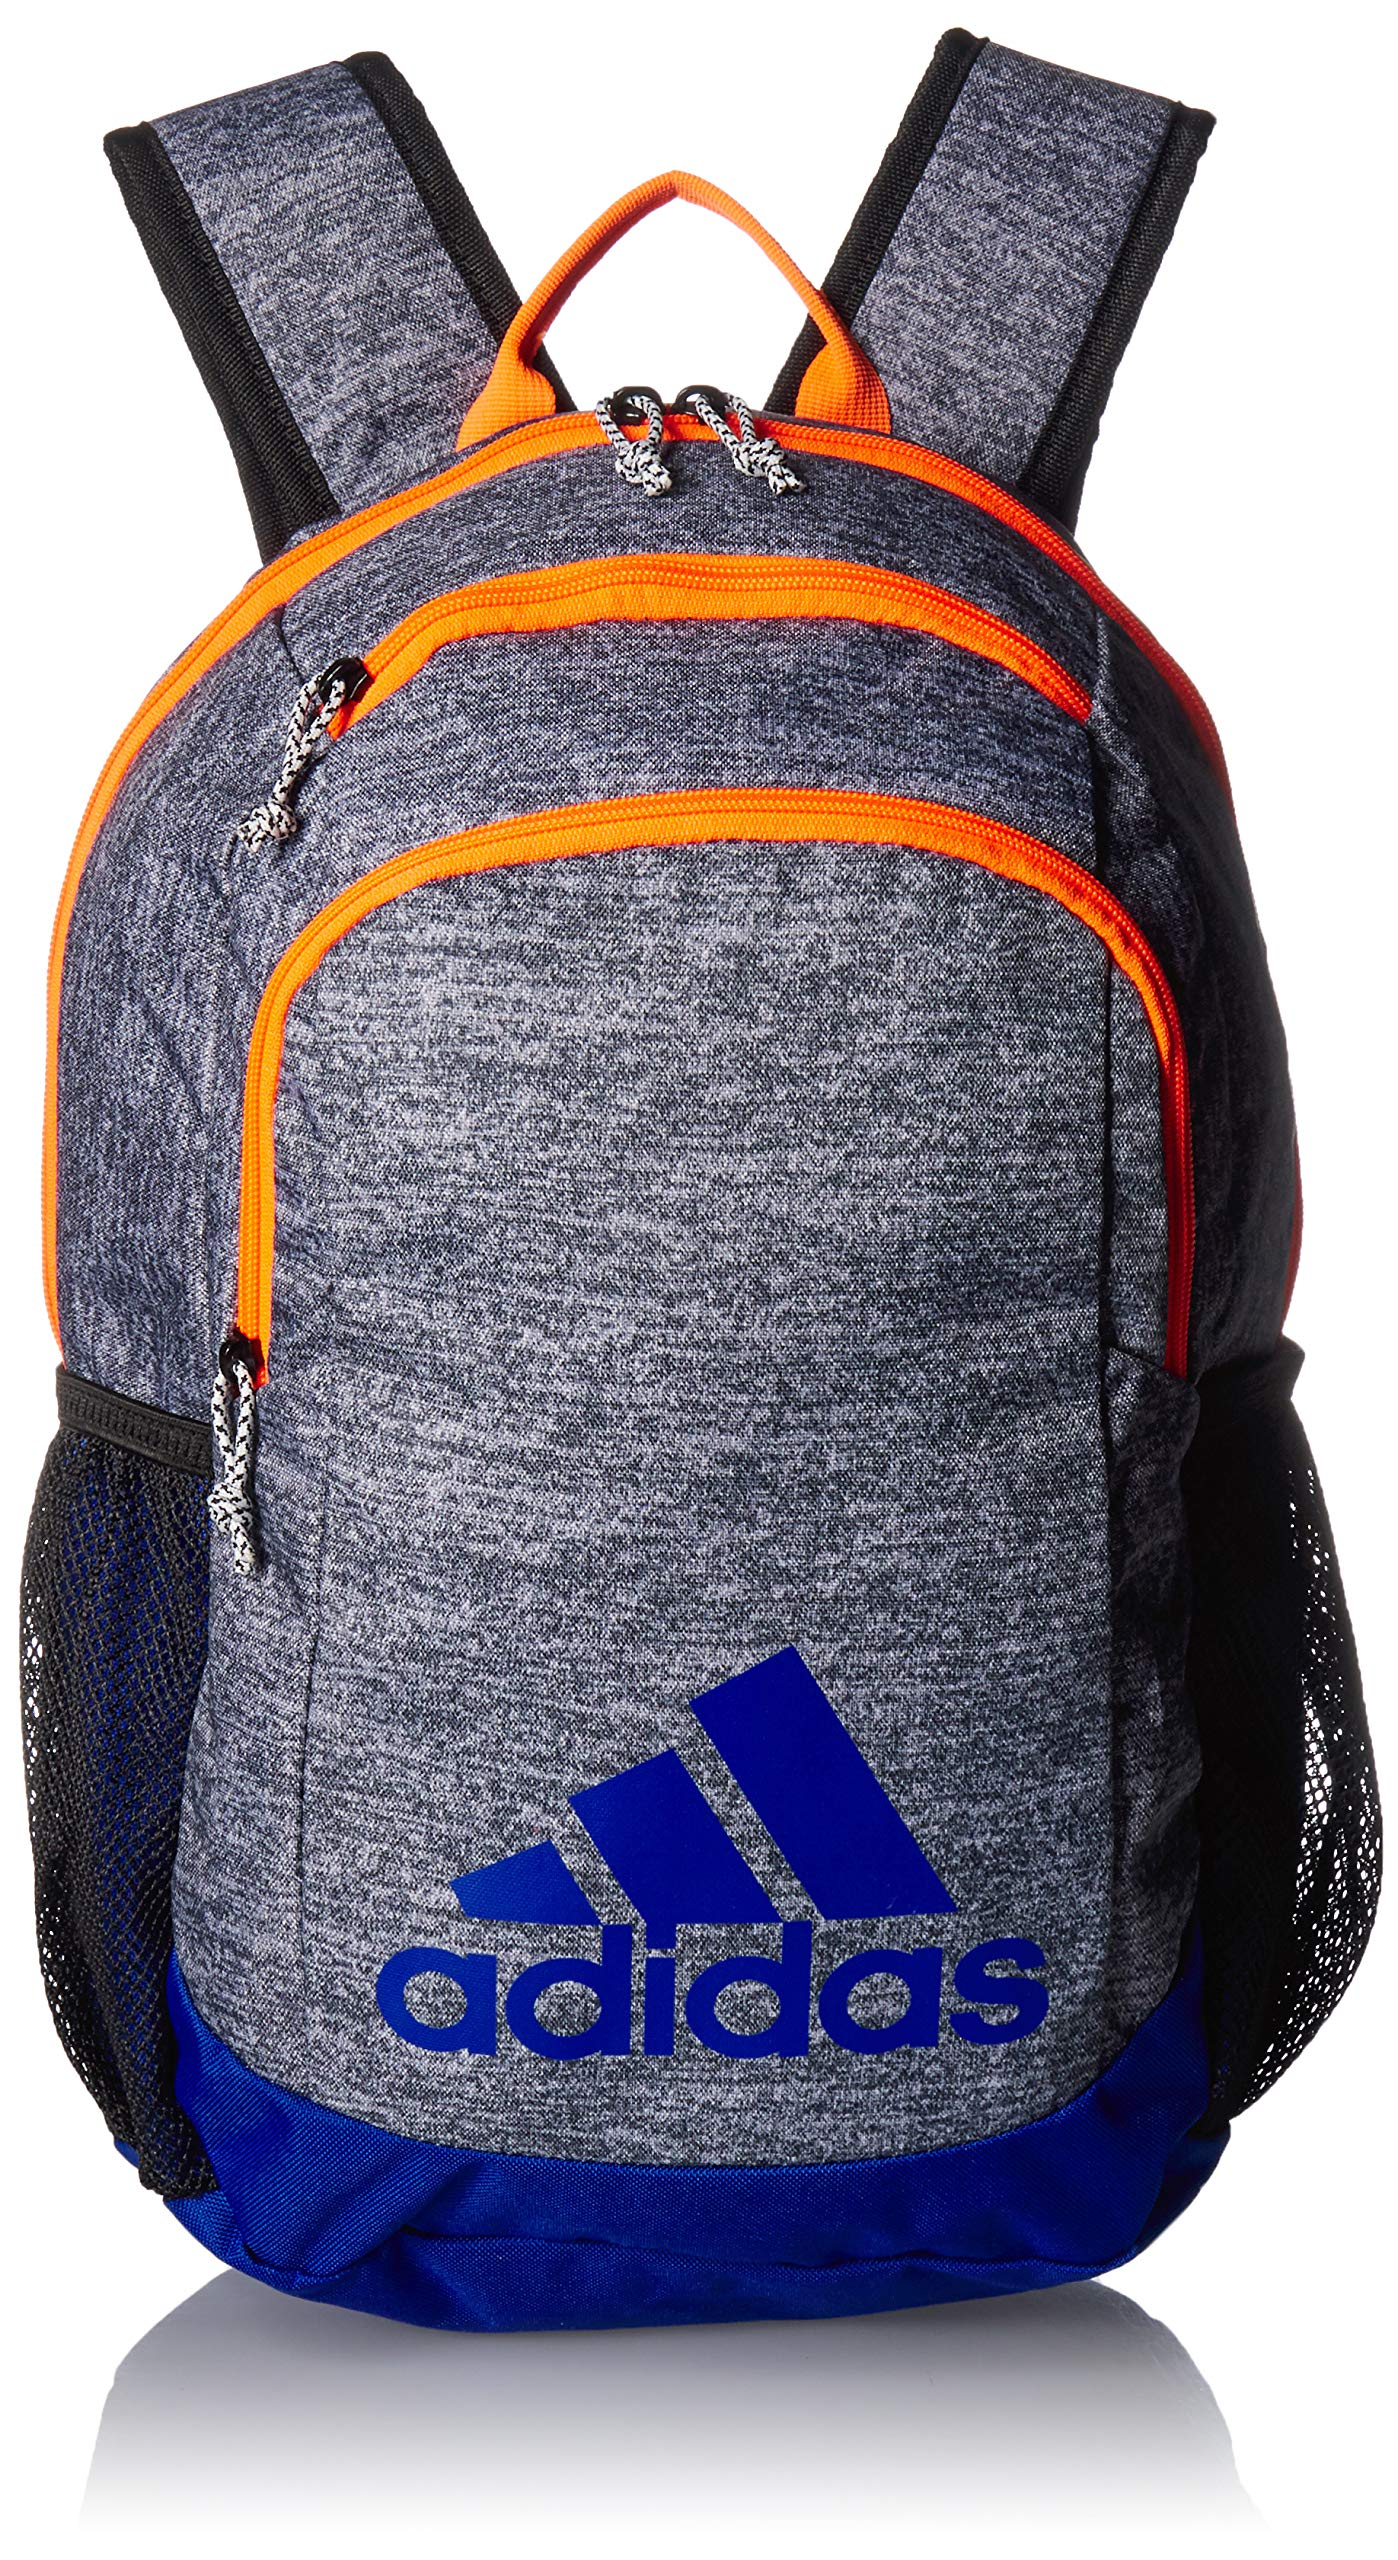 adidas Youth Kids-Boy's/Girl's Young Creator Backpack, Onix Jersey/Col. Royal/Solar Orange, 0 by adidas